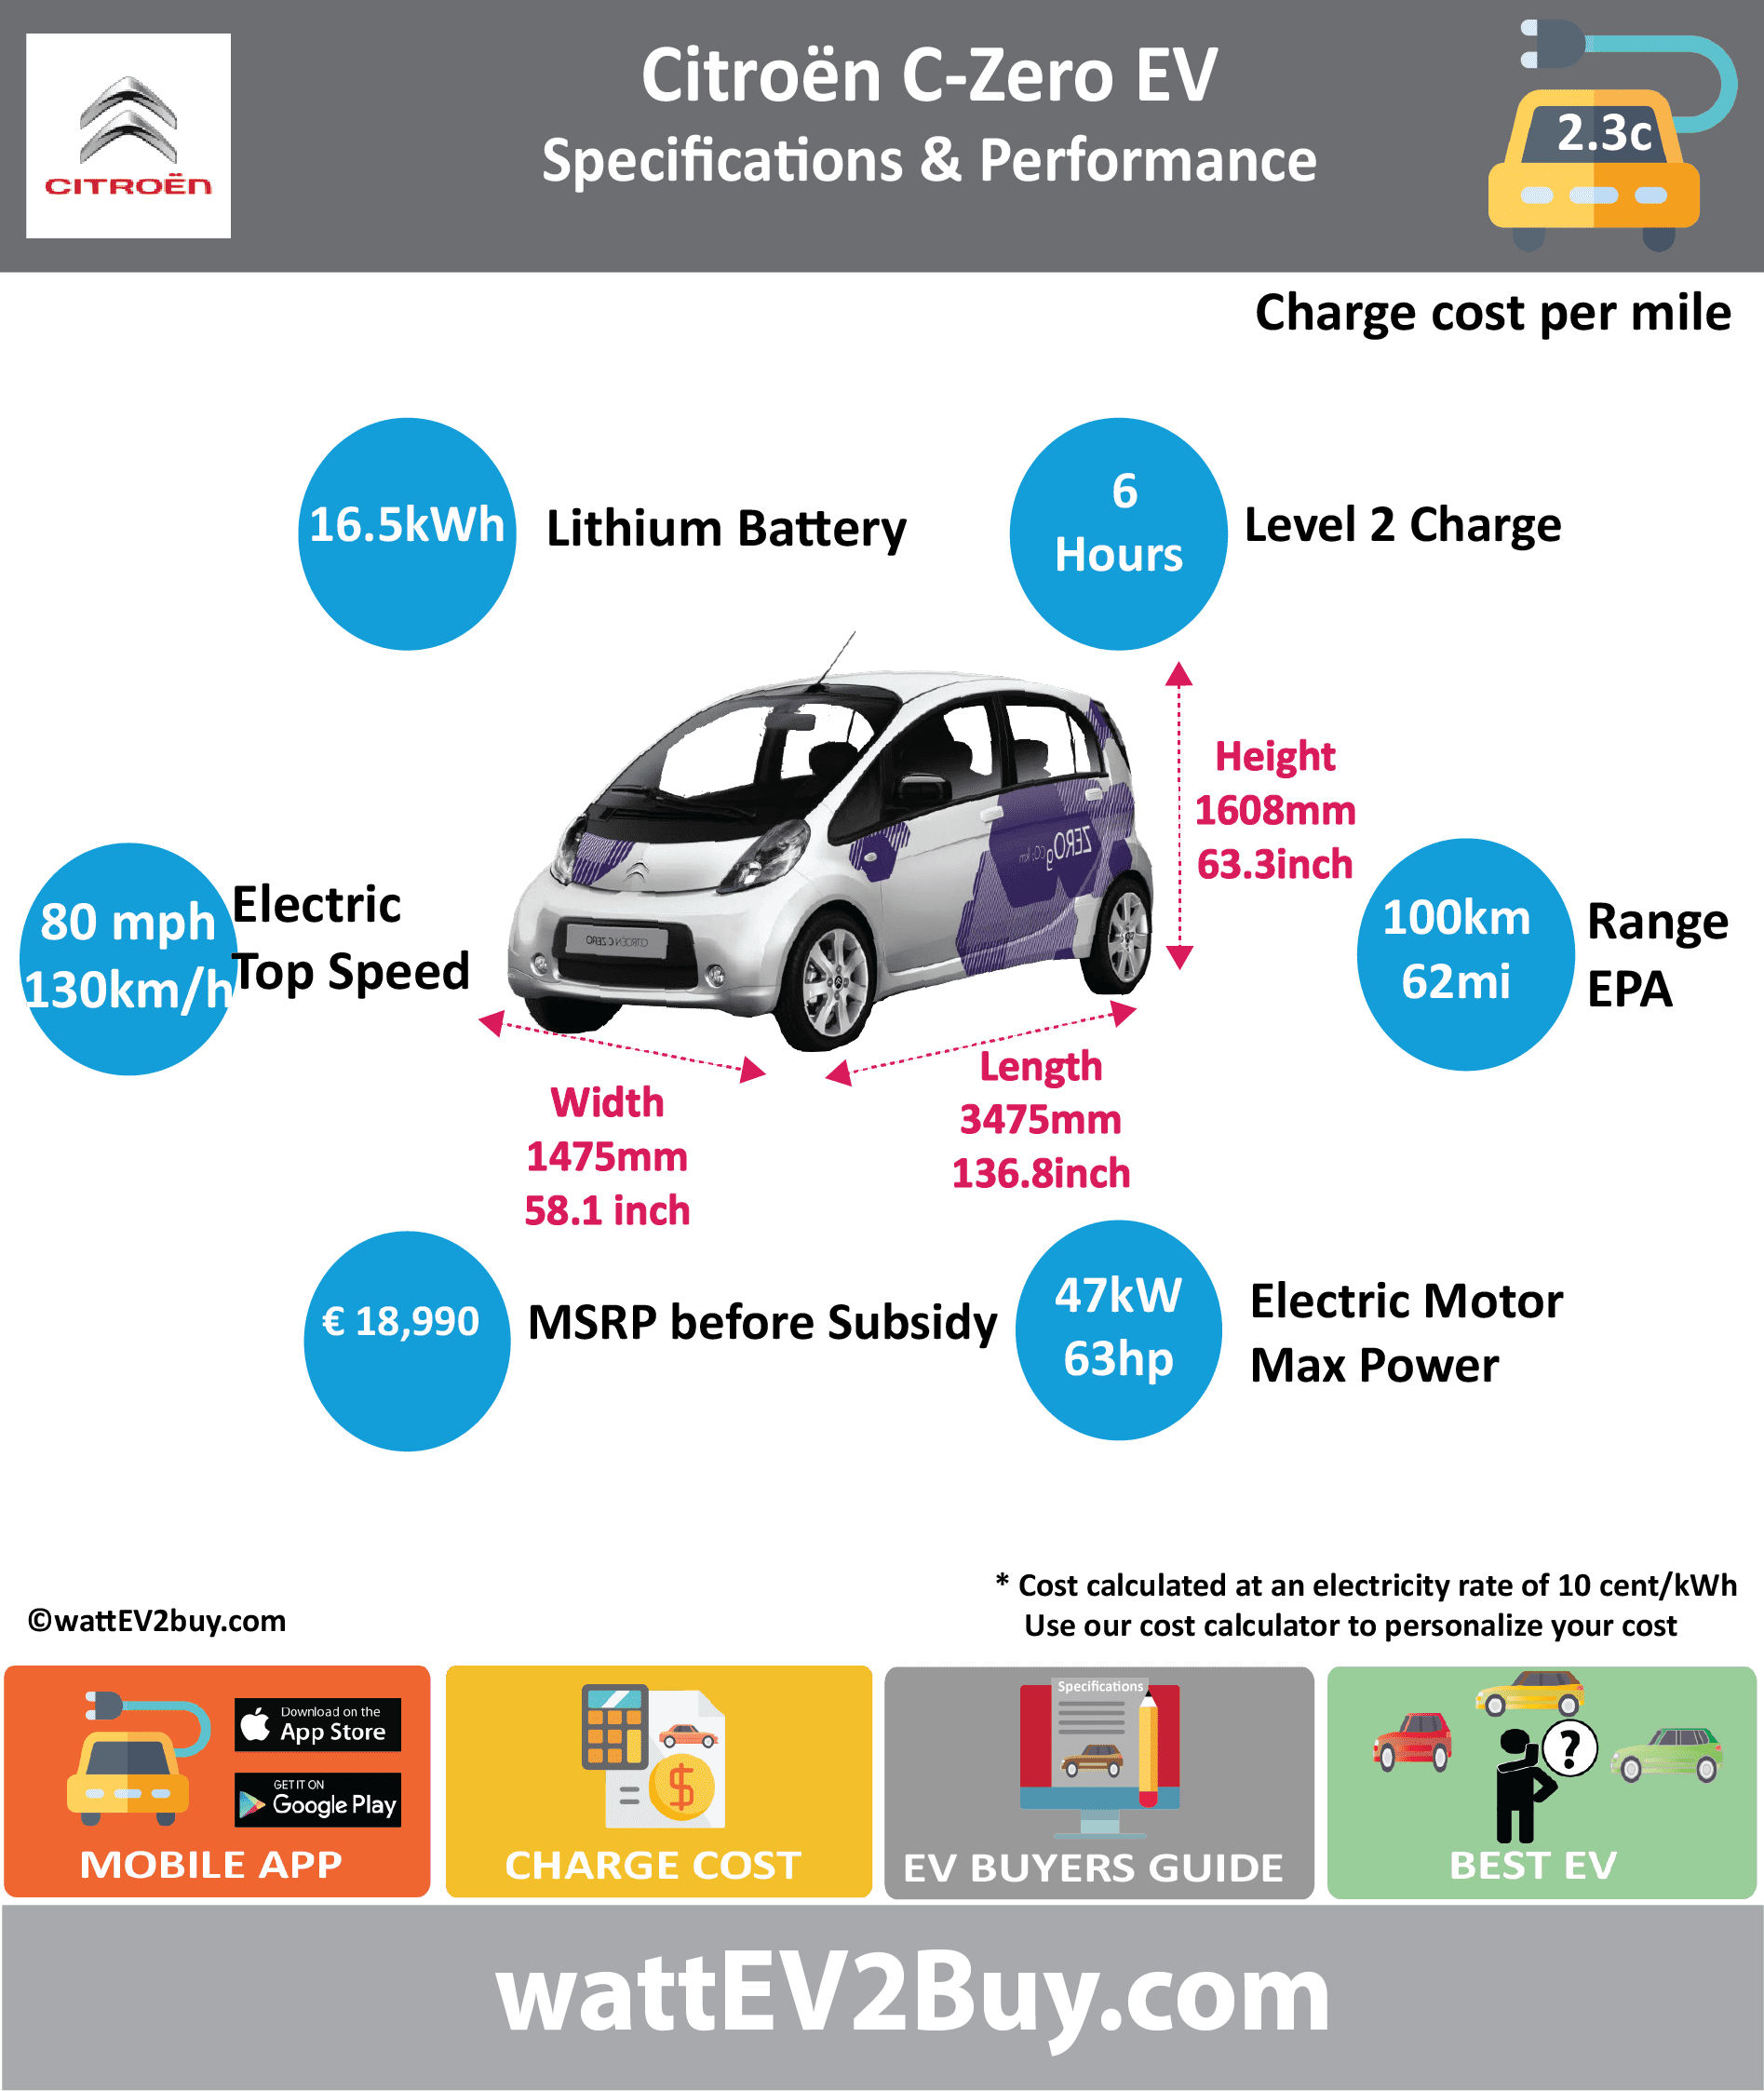 Citroen C-Zero EV Specs wattev2Buy.com 2011 2012 2013 2014 2015 2016 2017 Battery Chemistry lithium-ion titanate oxide Battery Capacity kWh 16.5 Battery Nominal rating kWh 14.5 Voltage V 330 Amps Ah 50 Cells 88 Modules Weight (kg) Cell Type SOC Cooling Cycles Battery Type Depth of Discharge (DOD) Energy Density Wh/kg Battery Manufacturer Toshiba Battery Warranty - years Battery Warranty - km Battery Warranty - miles Battery Electric Range - at constant 38mph Battery Electric Range - at constant 60km/h Battery Electric Range - NEDC Mi 100 Battery Electric Range - NEDC km 160 Battery Electric Range - CCM Mi Battery Electric Range - CCM km Battery Electric Range - EPA Mi 62 Battery Electric Range - EPA km 100 Electric Top Speed - mph 80 Electric Top Speed - km/h 130 Acceleration 0 - 100km/h sec 16.2 Acceleration 0 - 50km/h sec Acceleration 0 - 62mph sec Acceleration 0 - 60mph sec 15.1 Acceleration 0 - 37.2mph sec Wireless Charging Direct Current Fast Charge kW Charger Efficiency Onboard Charger kW Charging Cord - amps Charging Cord - volts LV 1 Charge kW LV 1 Charge Time (Hours) 14 LV 2 Charge kW LV 2 Charge Time (Hours) 7 LV 3 CCS/Combo kW LV 3 Charge Time (min to 70%) LV 3 Charge Time (min to 80%) 30 LV 3 Charge Time (mi) LV 3 Charge Time (km) Charging System kW Charger Output Charge Connector CHAdeMO Power Outlet kW Power Outlet Amps MPGe Combined - miles 112 MPGe Combined - km MPGe City - miles 126 MPGe City - km MPGe Highway - miles 99 MPGe Highway - km Max Power - hp Max Power - kW Max Torque - lb.ft Max Torque - N.m Drivetrain Generator Motor Type Electric Motor Output kW Electric Motor Output hp Transmission Electric Motor - Front FWD Max Power - hp FWD Max Power - kW FWD Max Torque - lb.ft FWD Max Torque - N.m Electric Motor - Rear 1 RWD Max Power - hp 63 RWD Max Power - kW 47 RWD Max Torque - lb.ft RWD Max Torque - N.m 180 Energy Consumption kWh/100km 13.5 Energy Consumption kWh/100miles Deposit GB Battery Lease per month EU Battery Lease per month MSRP (expected) EU MSRP (before incentives & destination) GB MSRP (before incentives & destination) US MSRP (before incentives & destination) MSRP after incentives Vehicle Trims Doors 5 Seating Dimensions Luggage (L) GVWR (kg) GVWR (lbs) Curb Weight (kg) 1065 Curb Weight (lbs) 2348 Payload Capacity (kg) Payload Capacity (lbs) Towing Capacity (lbs) Max Load Height (m) Ground Clearance (inc) Ground Clearance (mm) Height (inc) 63.25391208 Height (mm) 1608 Lenght (inc) 136.8 Lenght (mm) 3475 Wheelbase (inc) 100.4 Wheelbase (mm) 2550 Width (inc) 58.1 Width (mm) 1475 Other Utility Factor Auto Show Unveil Market Segment A - Mini Cars Class Micro Car Safety Level Unveiled Relaunch First Delivery Chassis designed Based On AKA Self-Driving System SAE Autonomous Level Connectivity Unique Extras Incentives Home Charge Installation Public Charging Subsidy WEBSITE